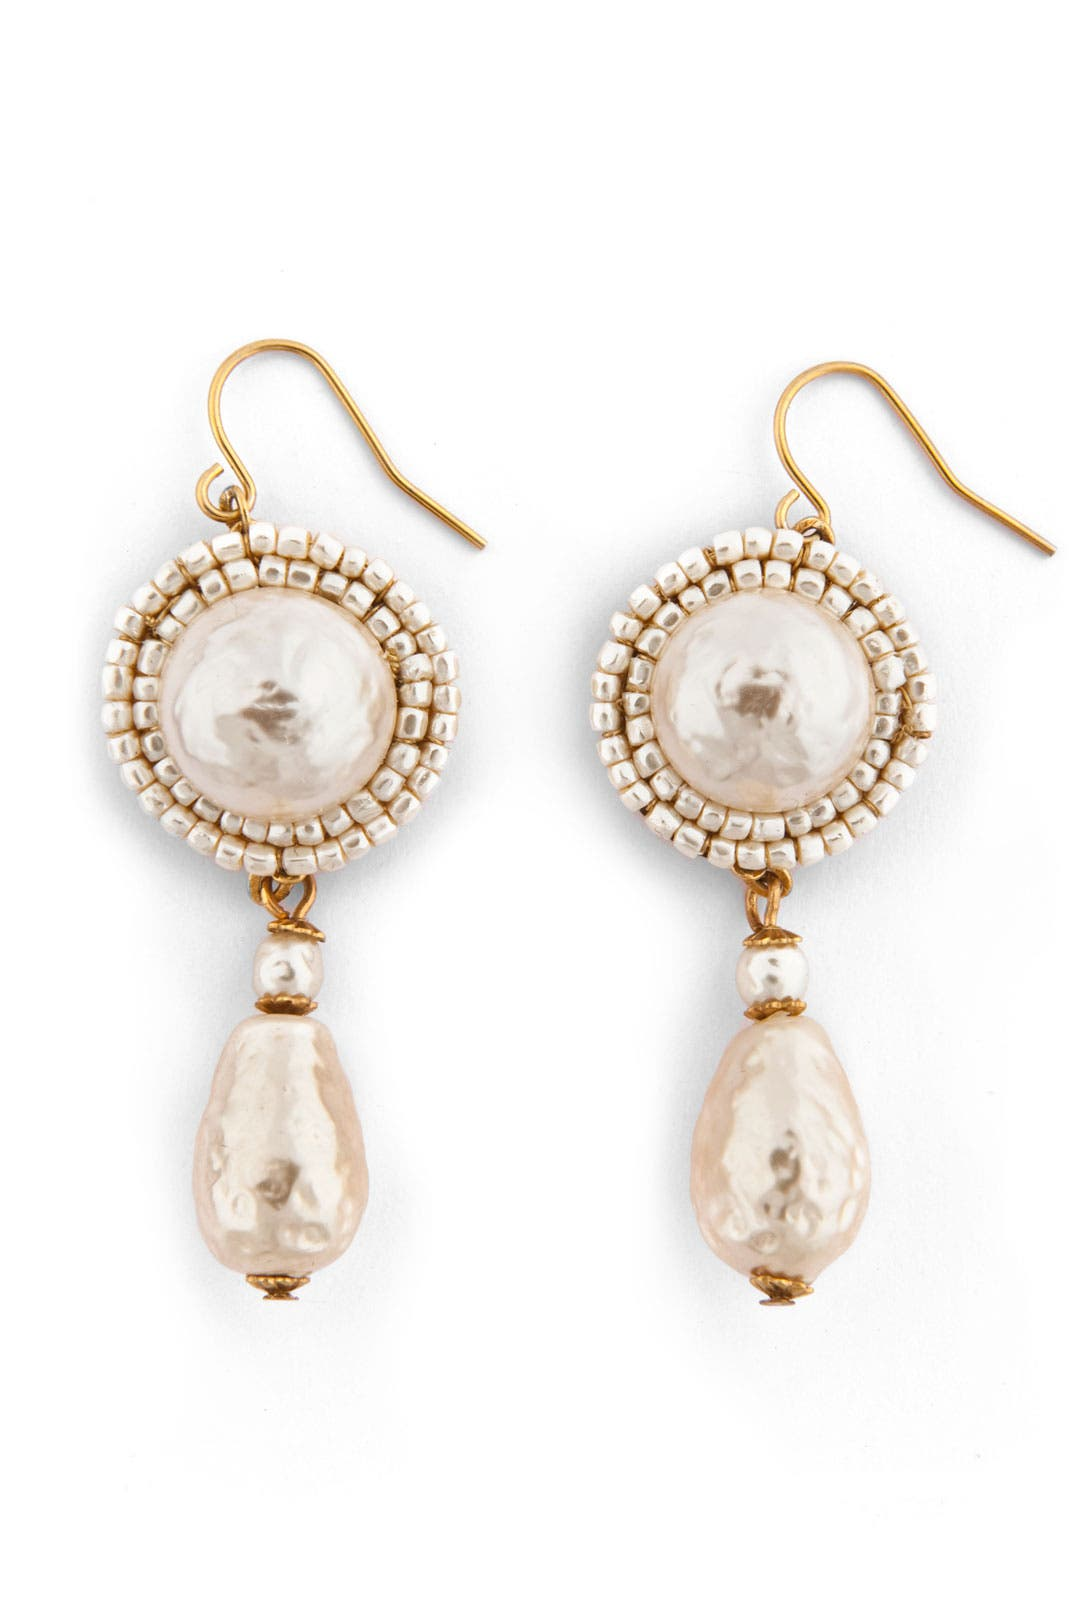 Power of Pearl Earrings by Miriam Haskell